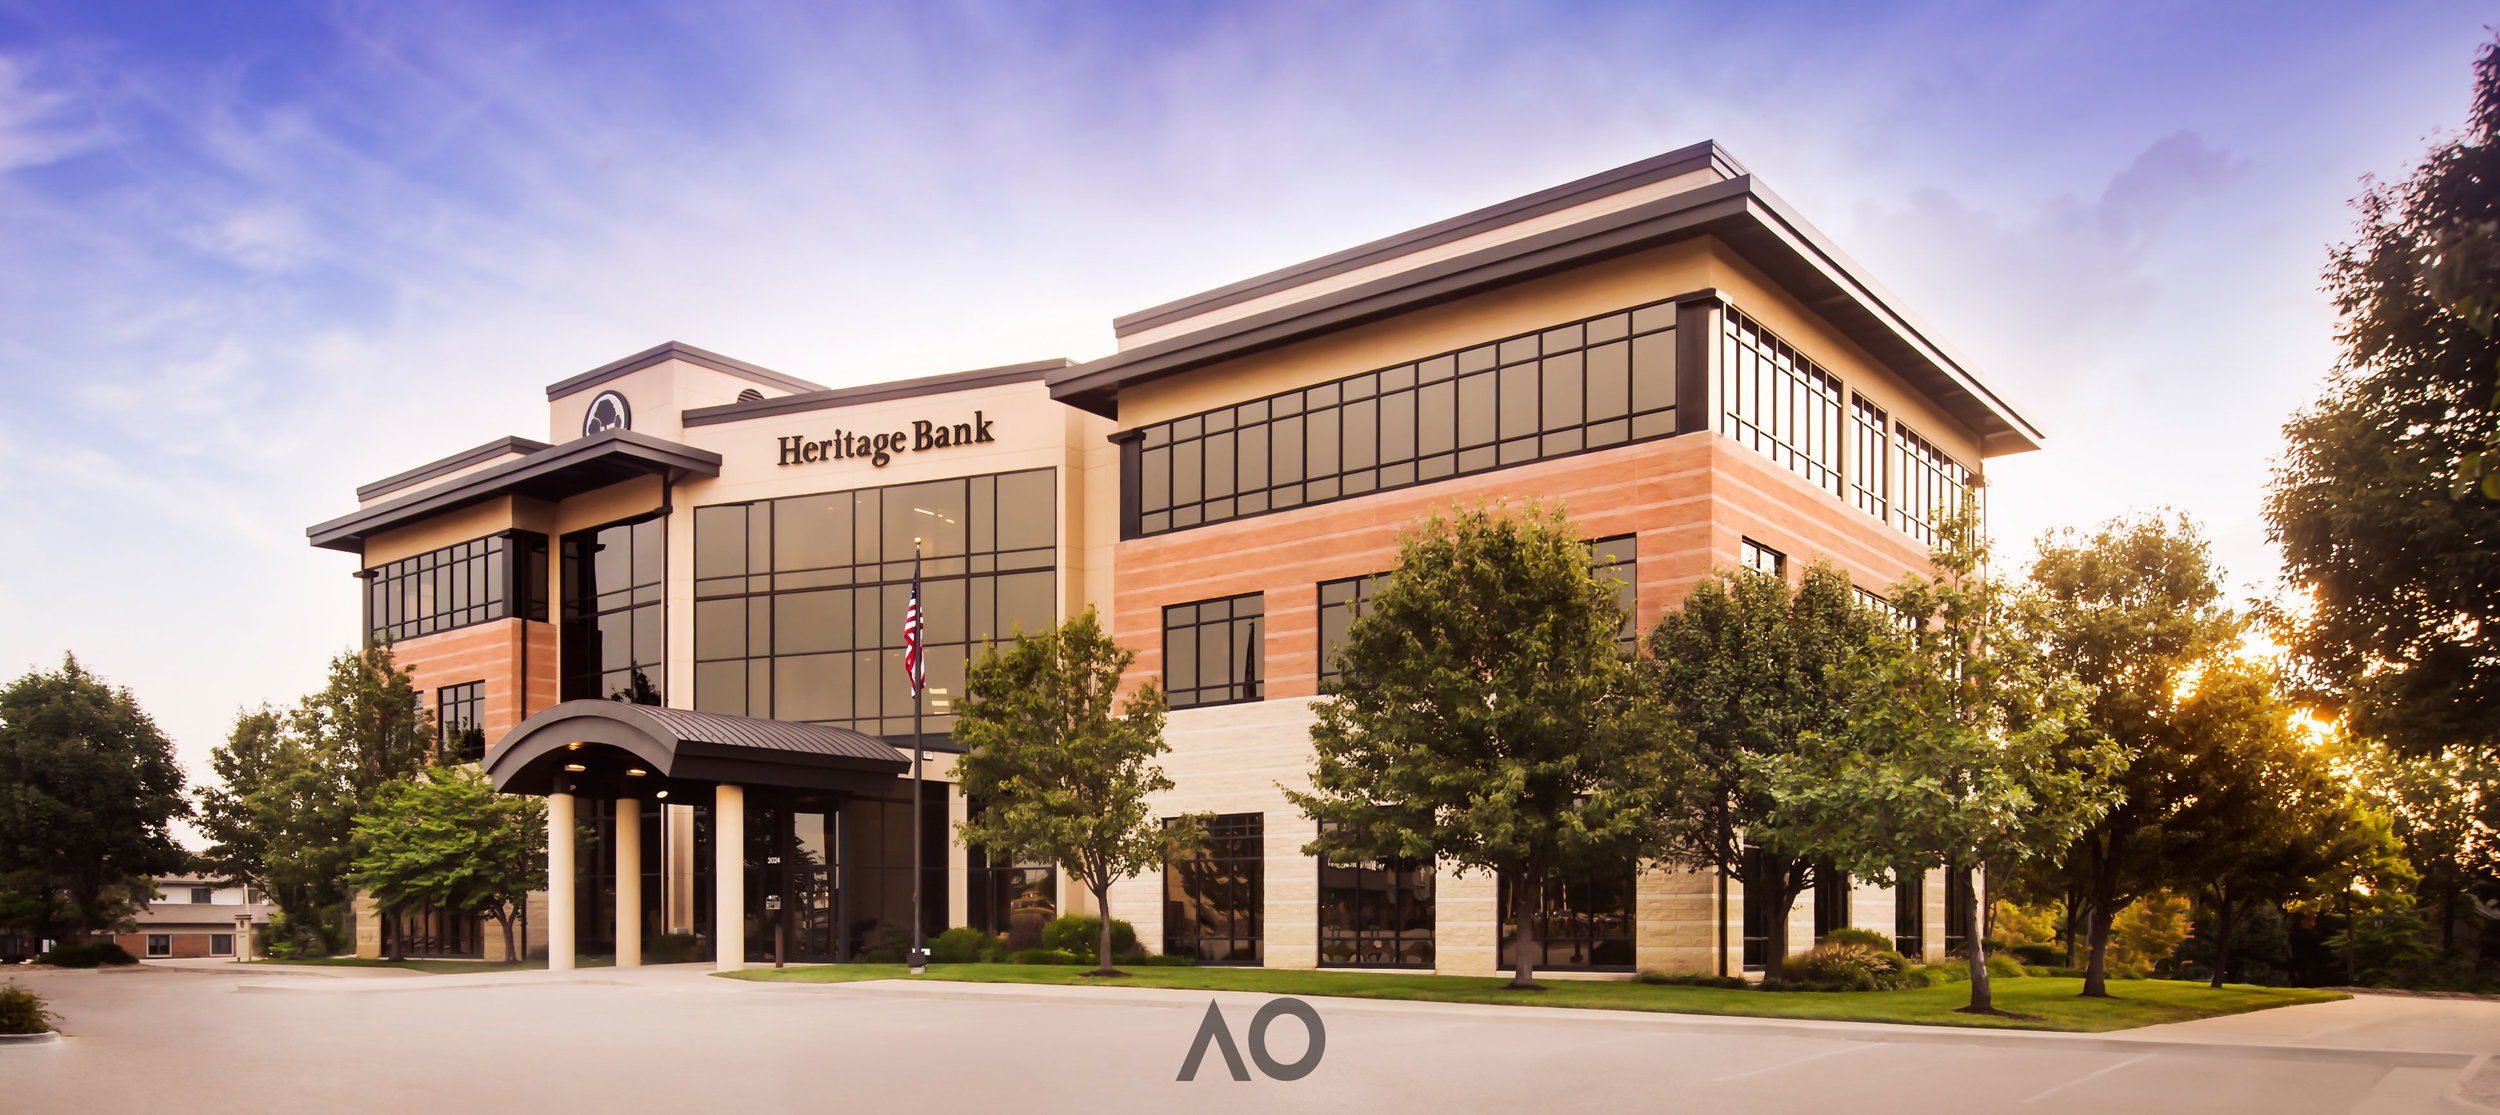 Architect_One_Heritage_Bank_4.jpg